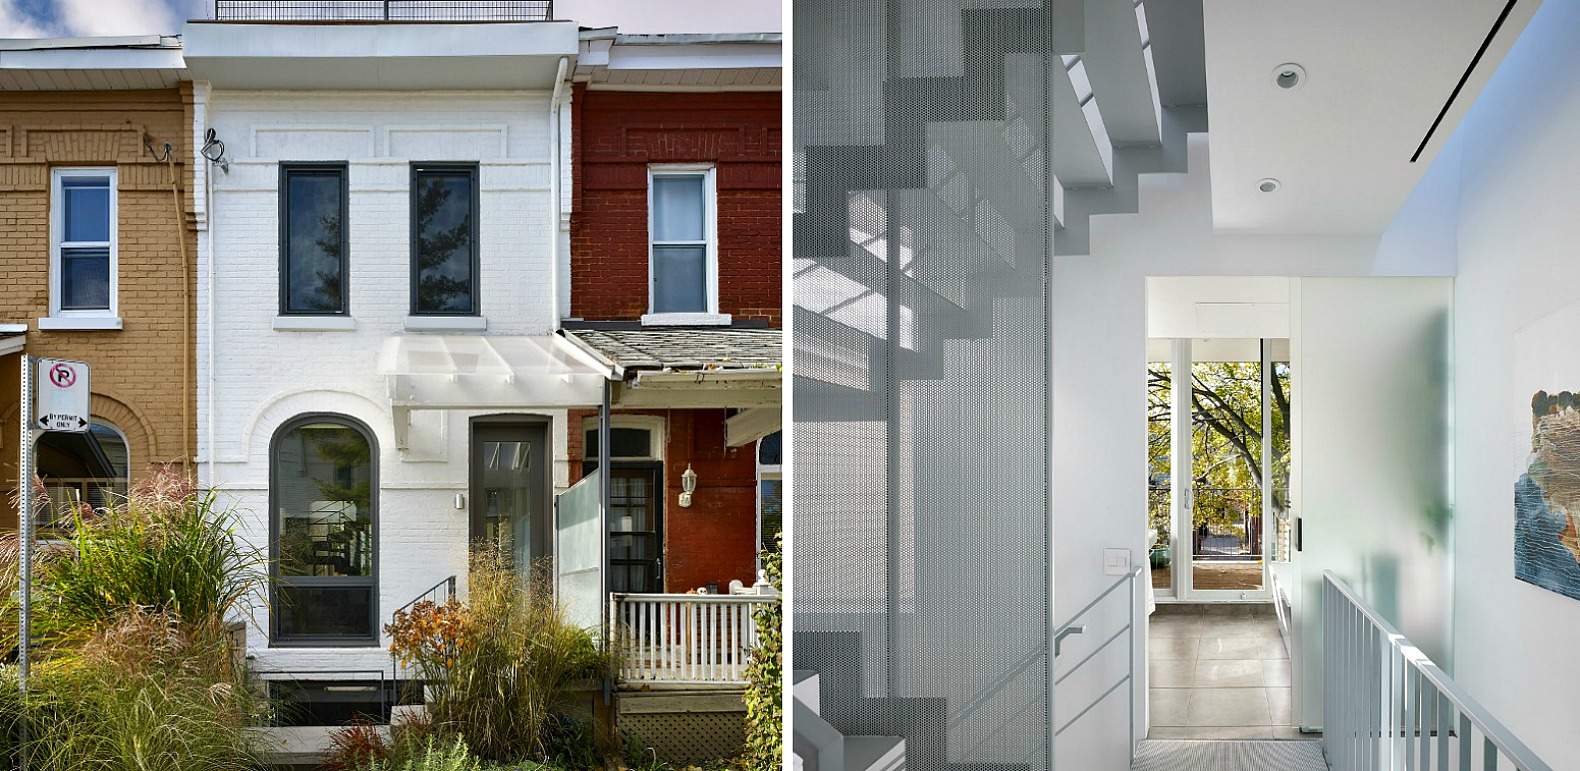 Modern Aluminum Addition Blends Seamlessly In With 19th